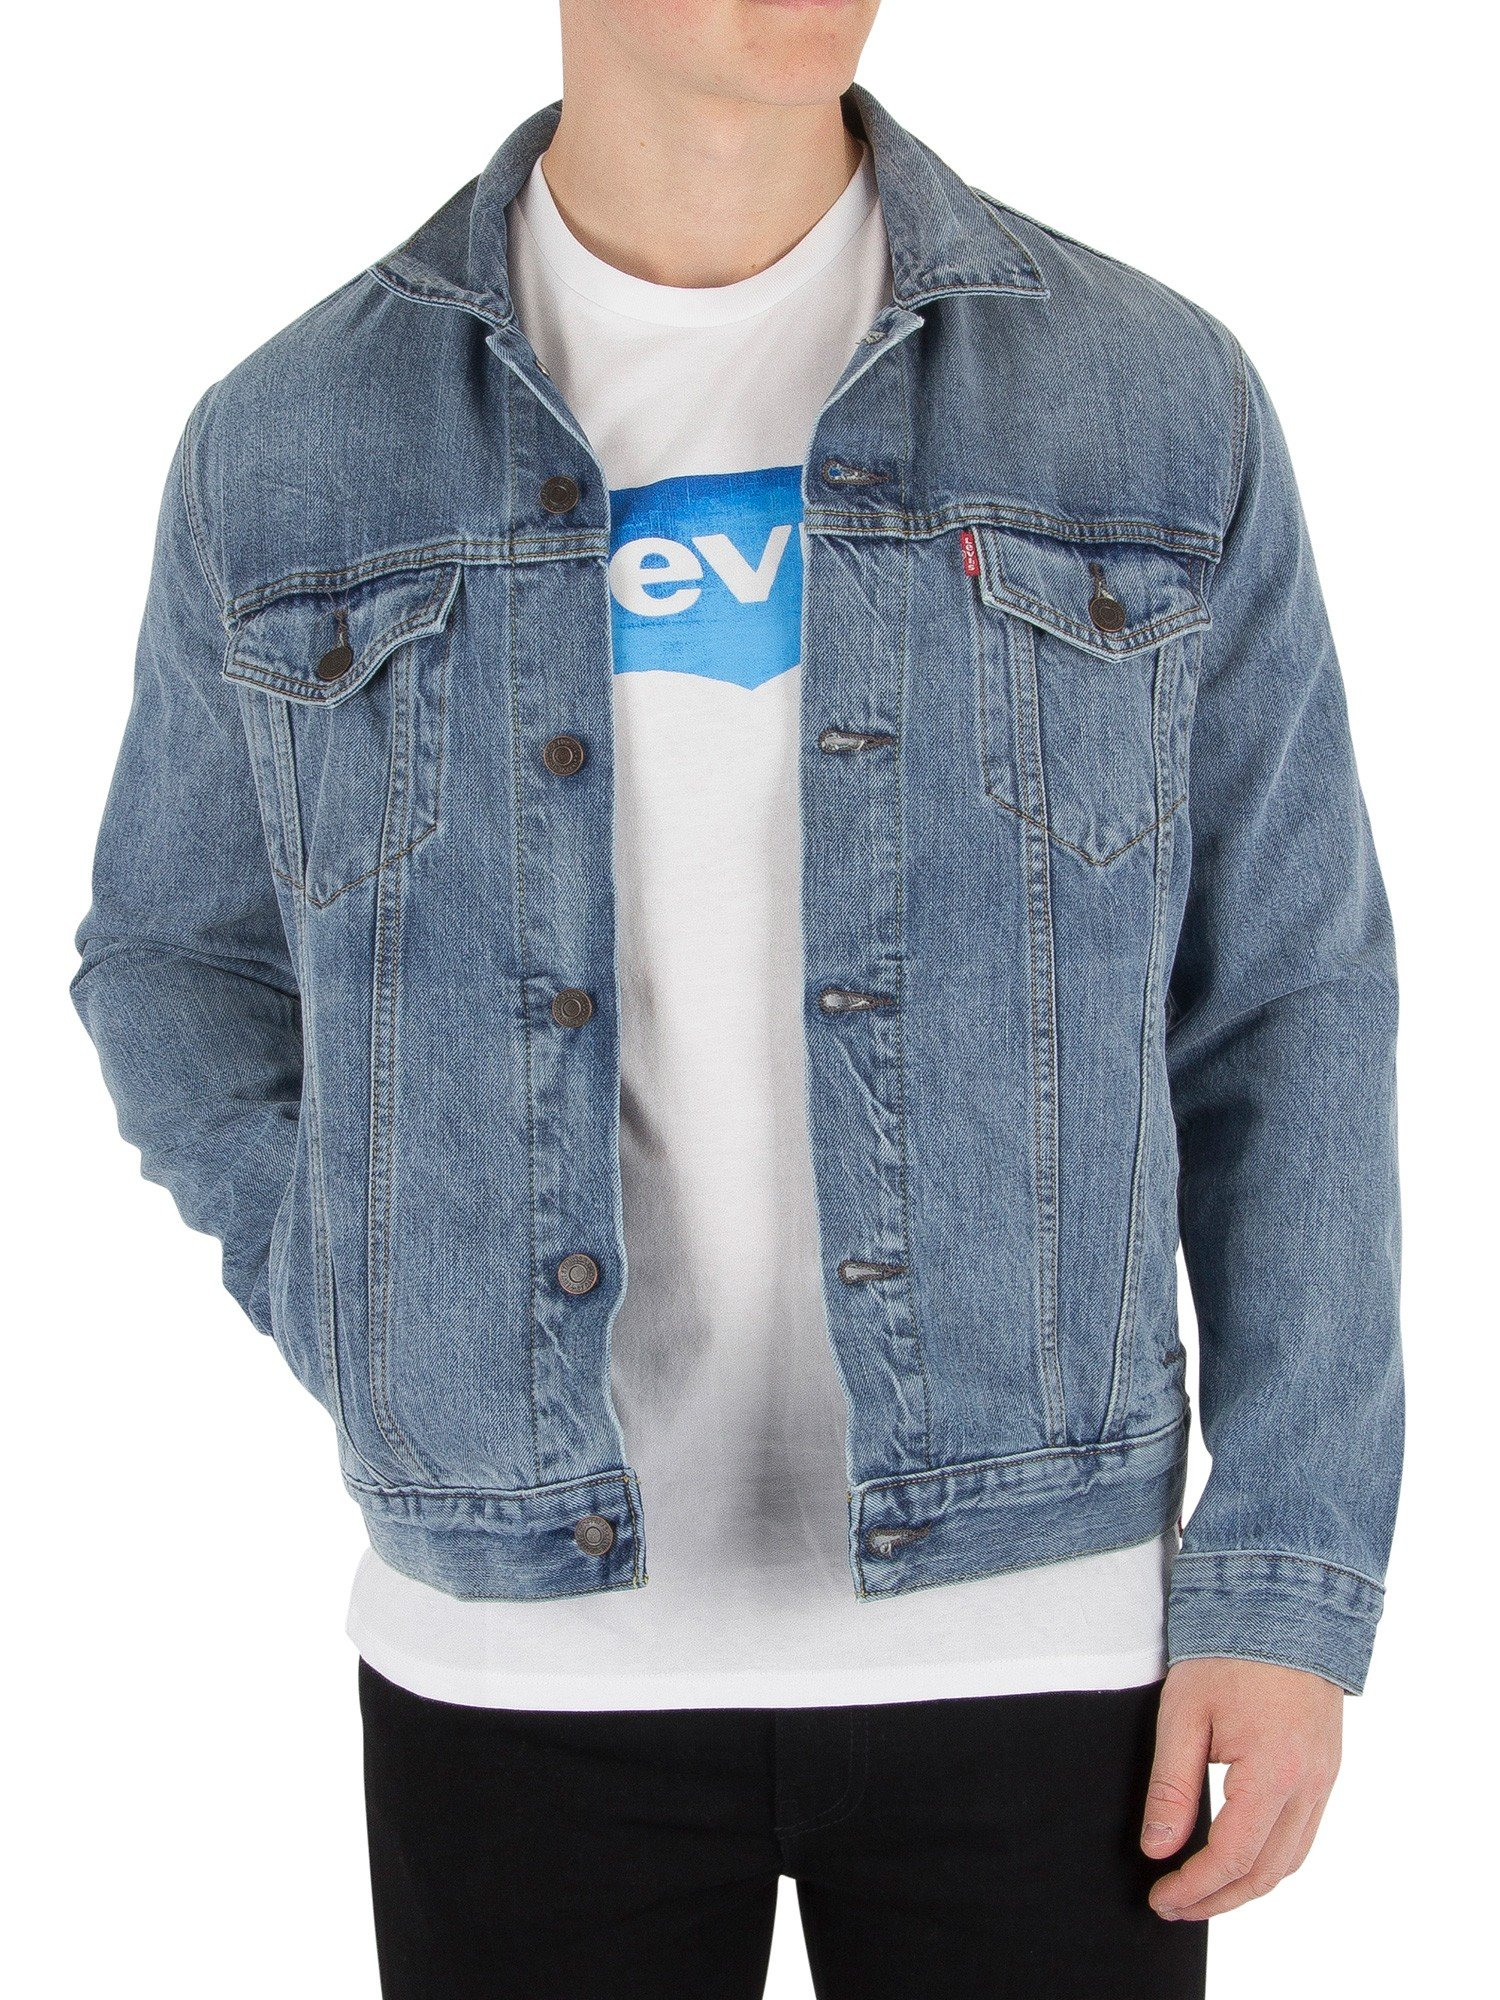 Levi's Jean Jacket The Trucker - ICY, M by Levi's